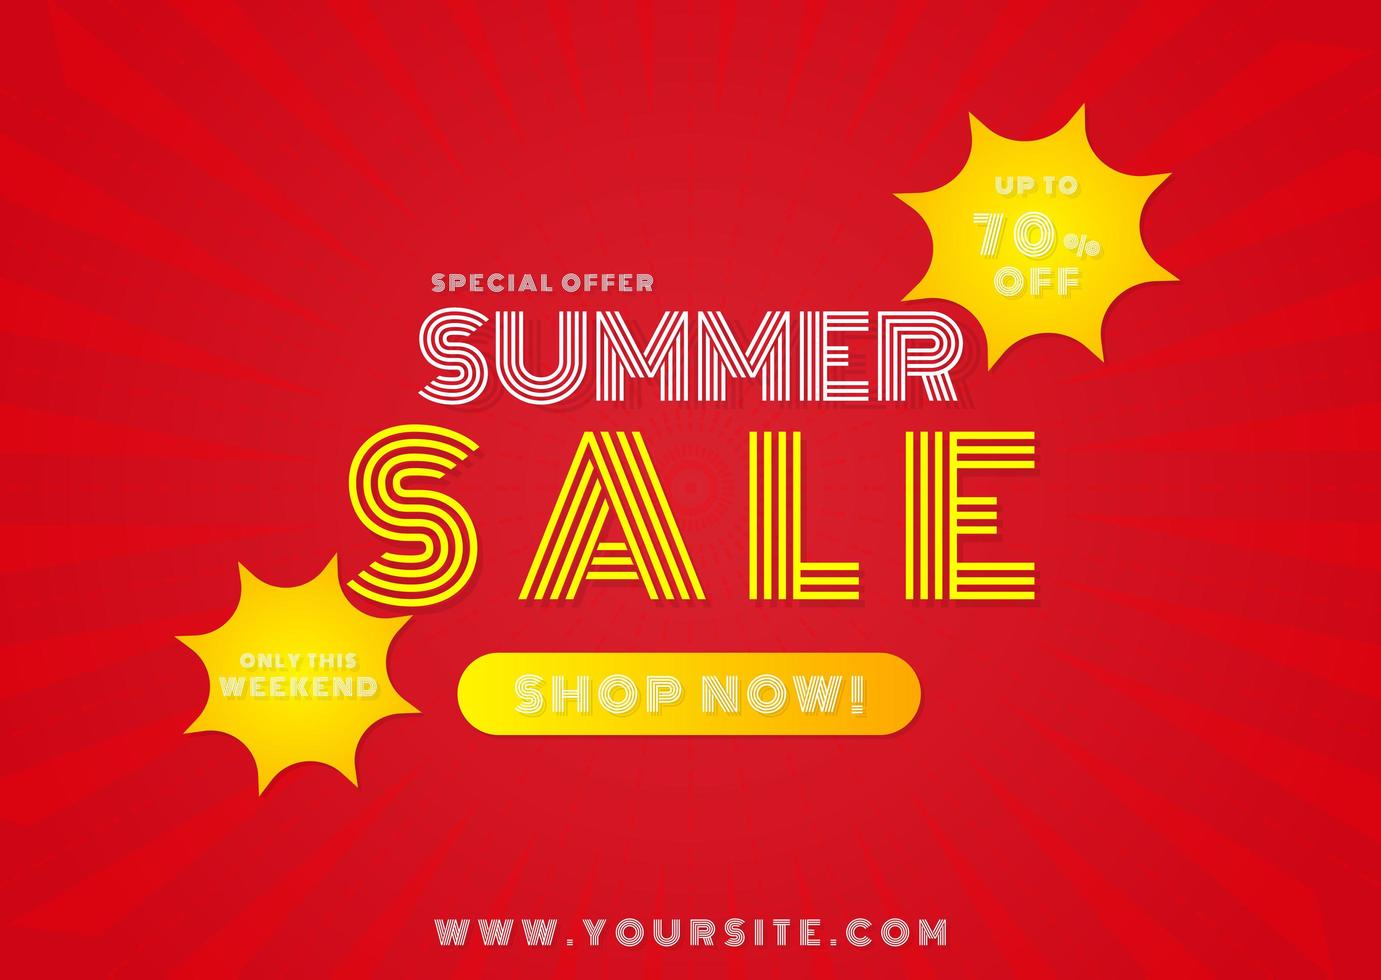 Special offer summer sale banner vector